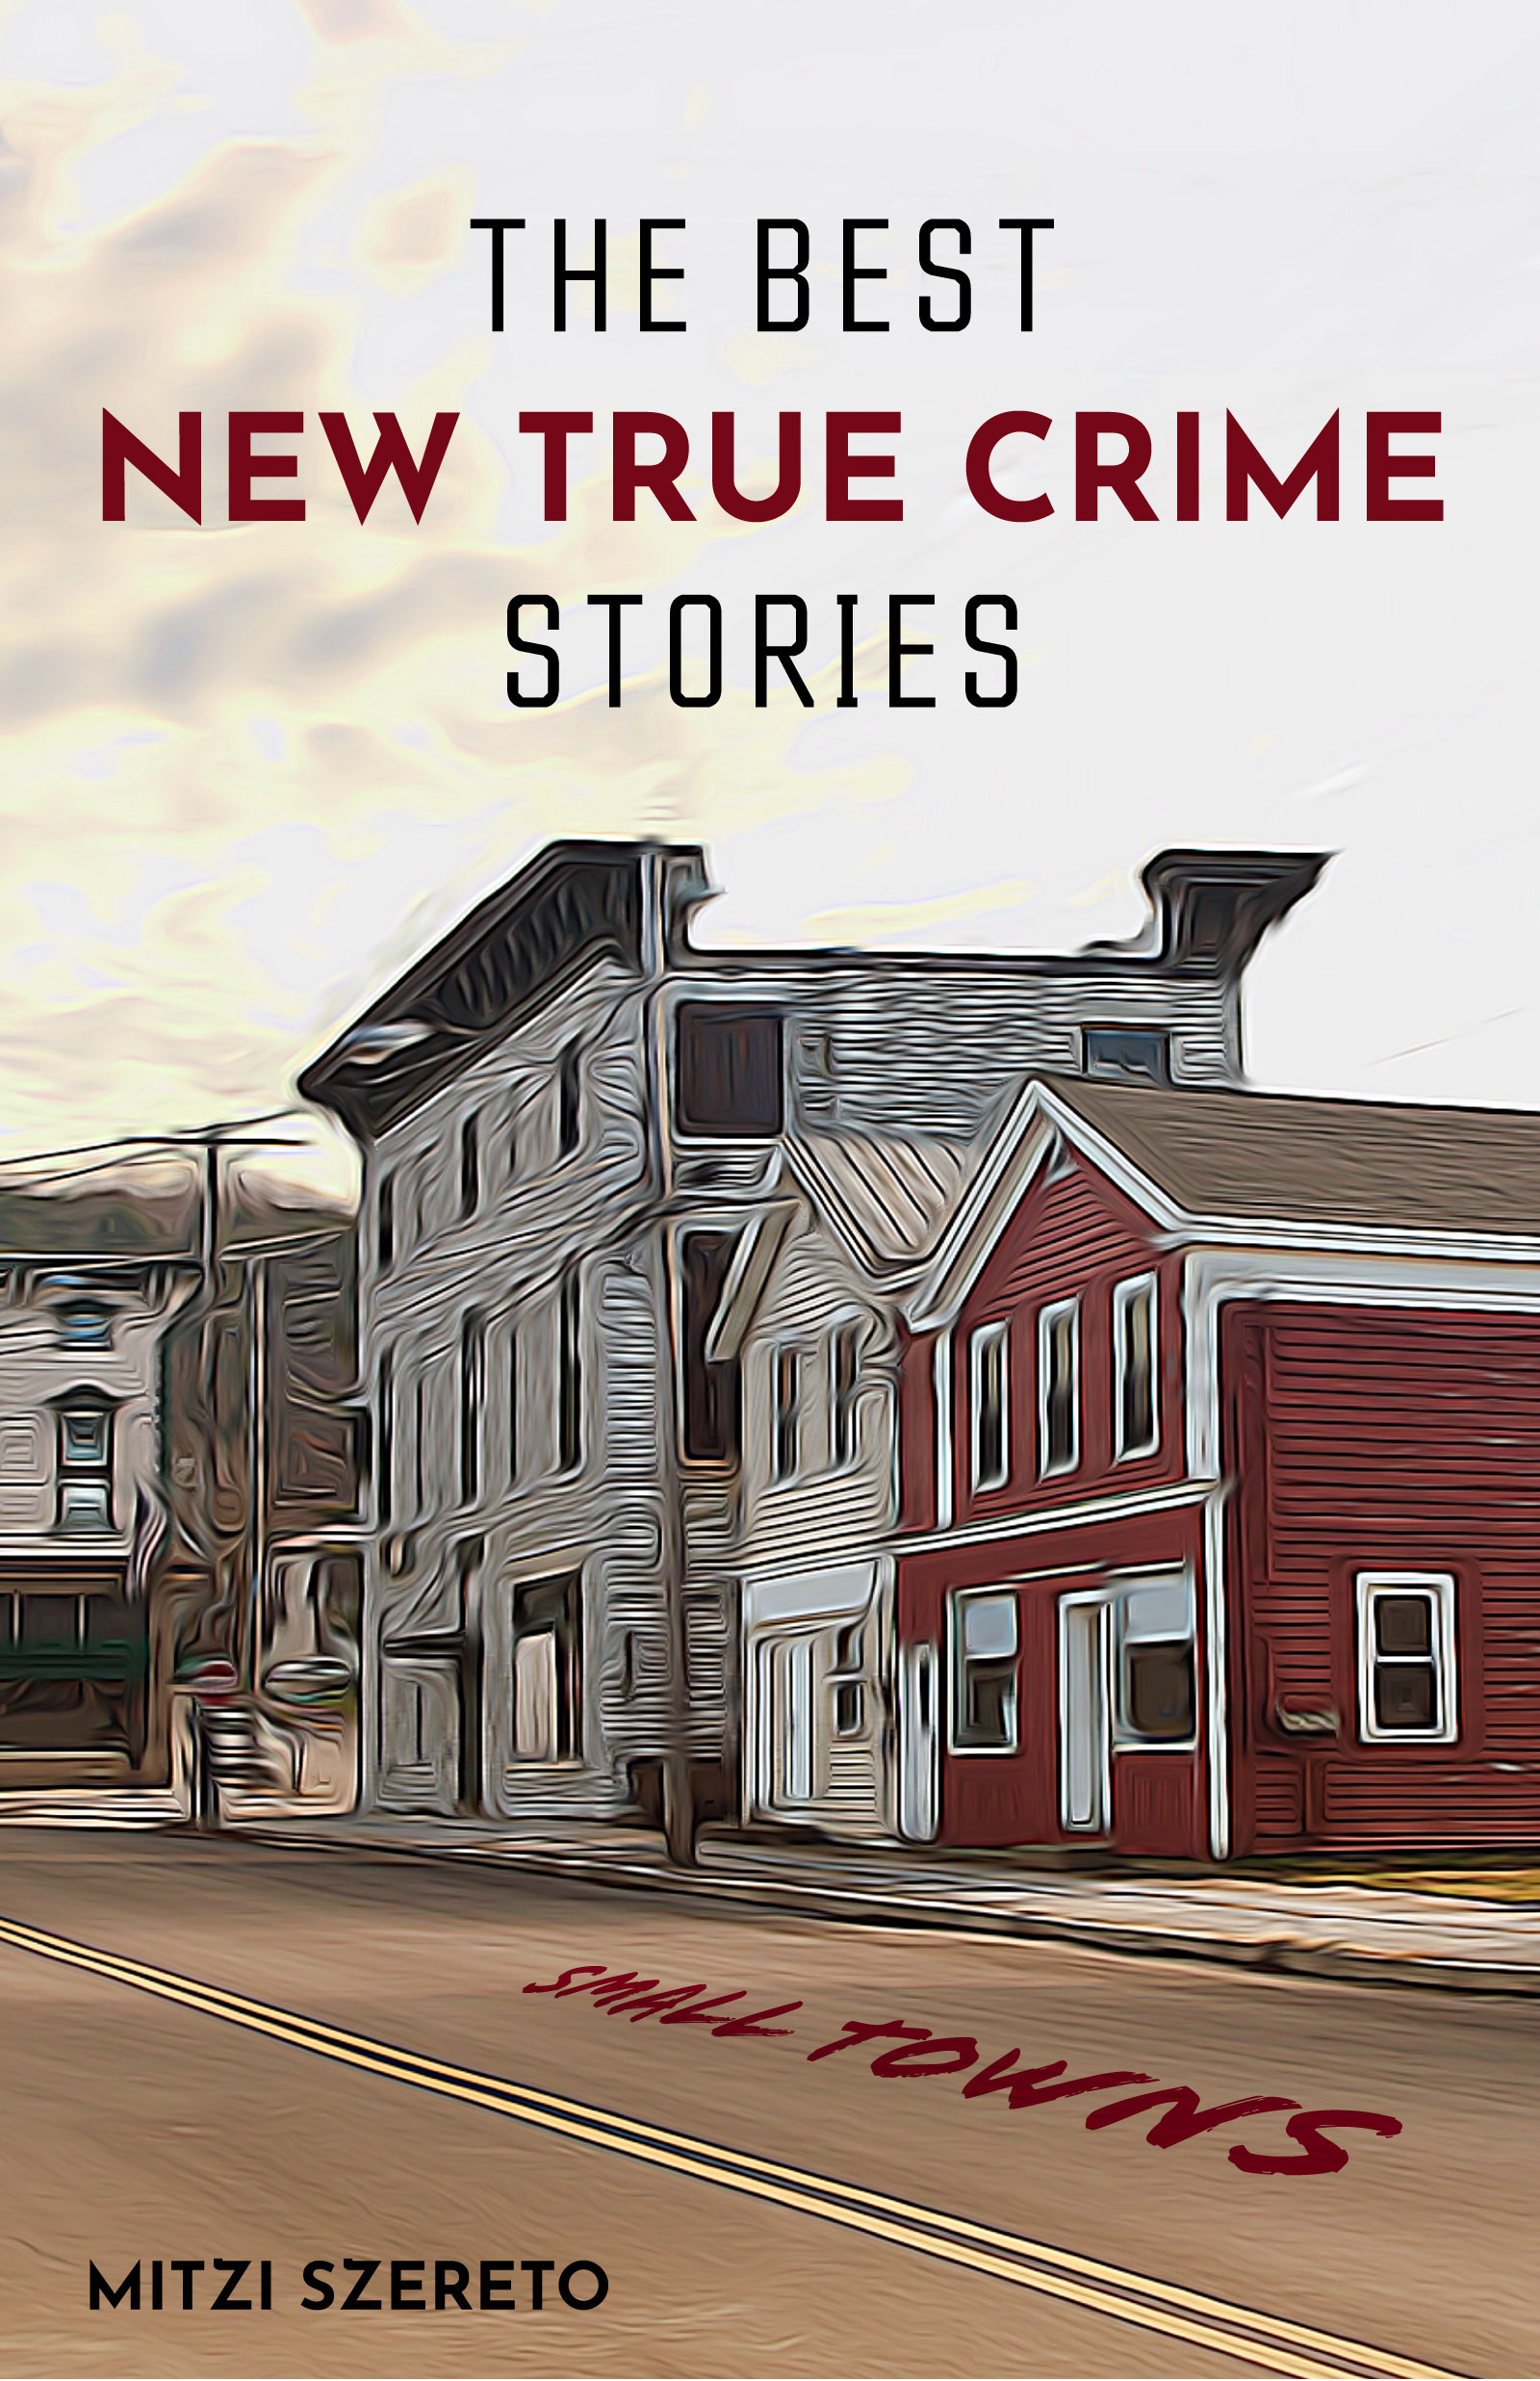 The Best New True Crime Stories Small Towns